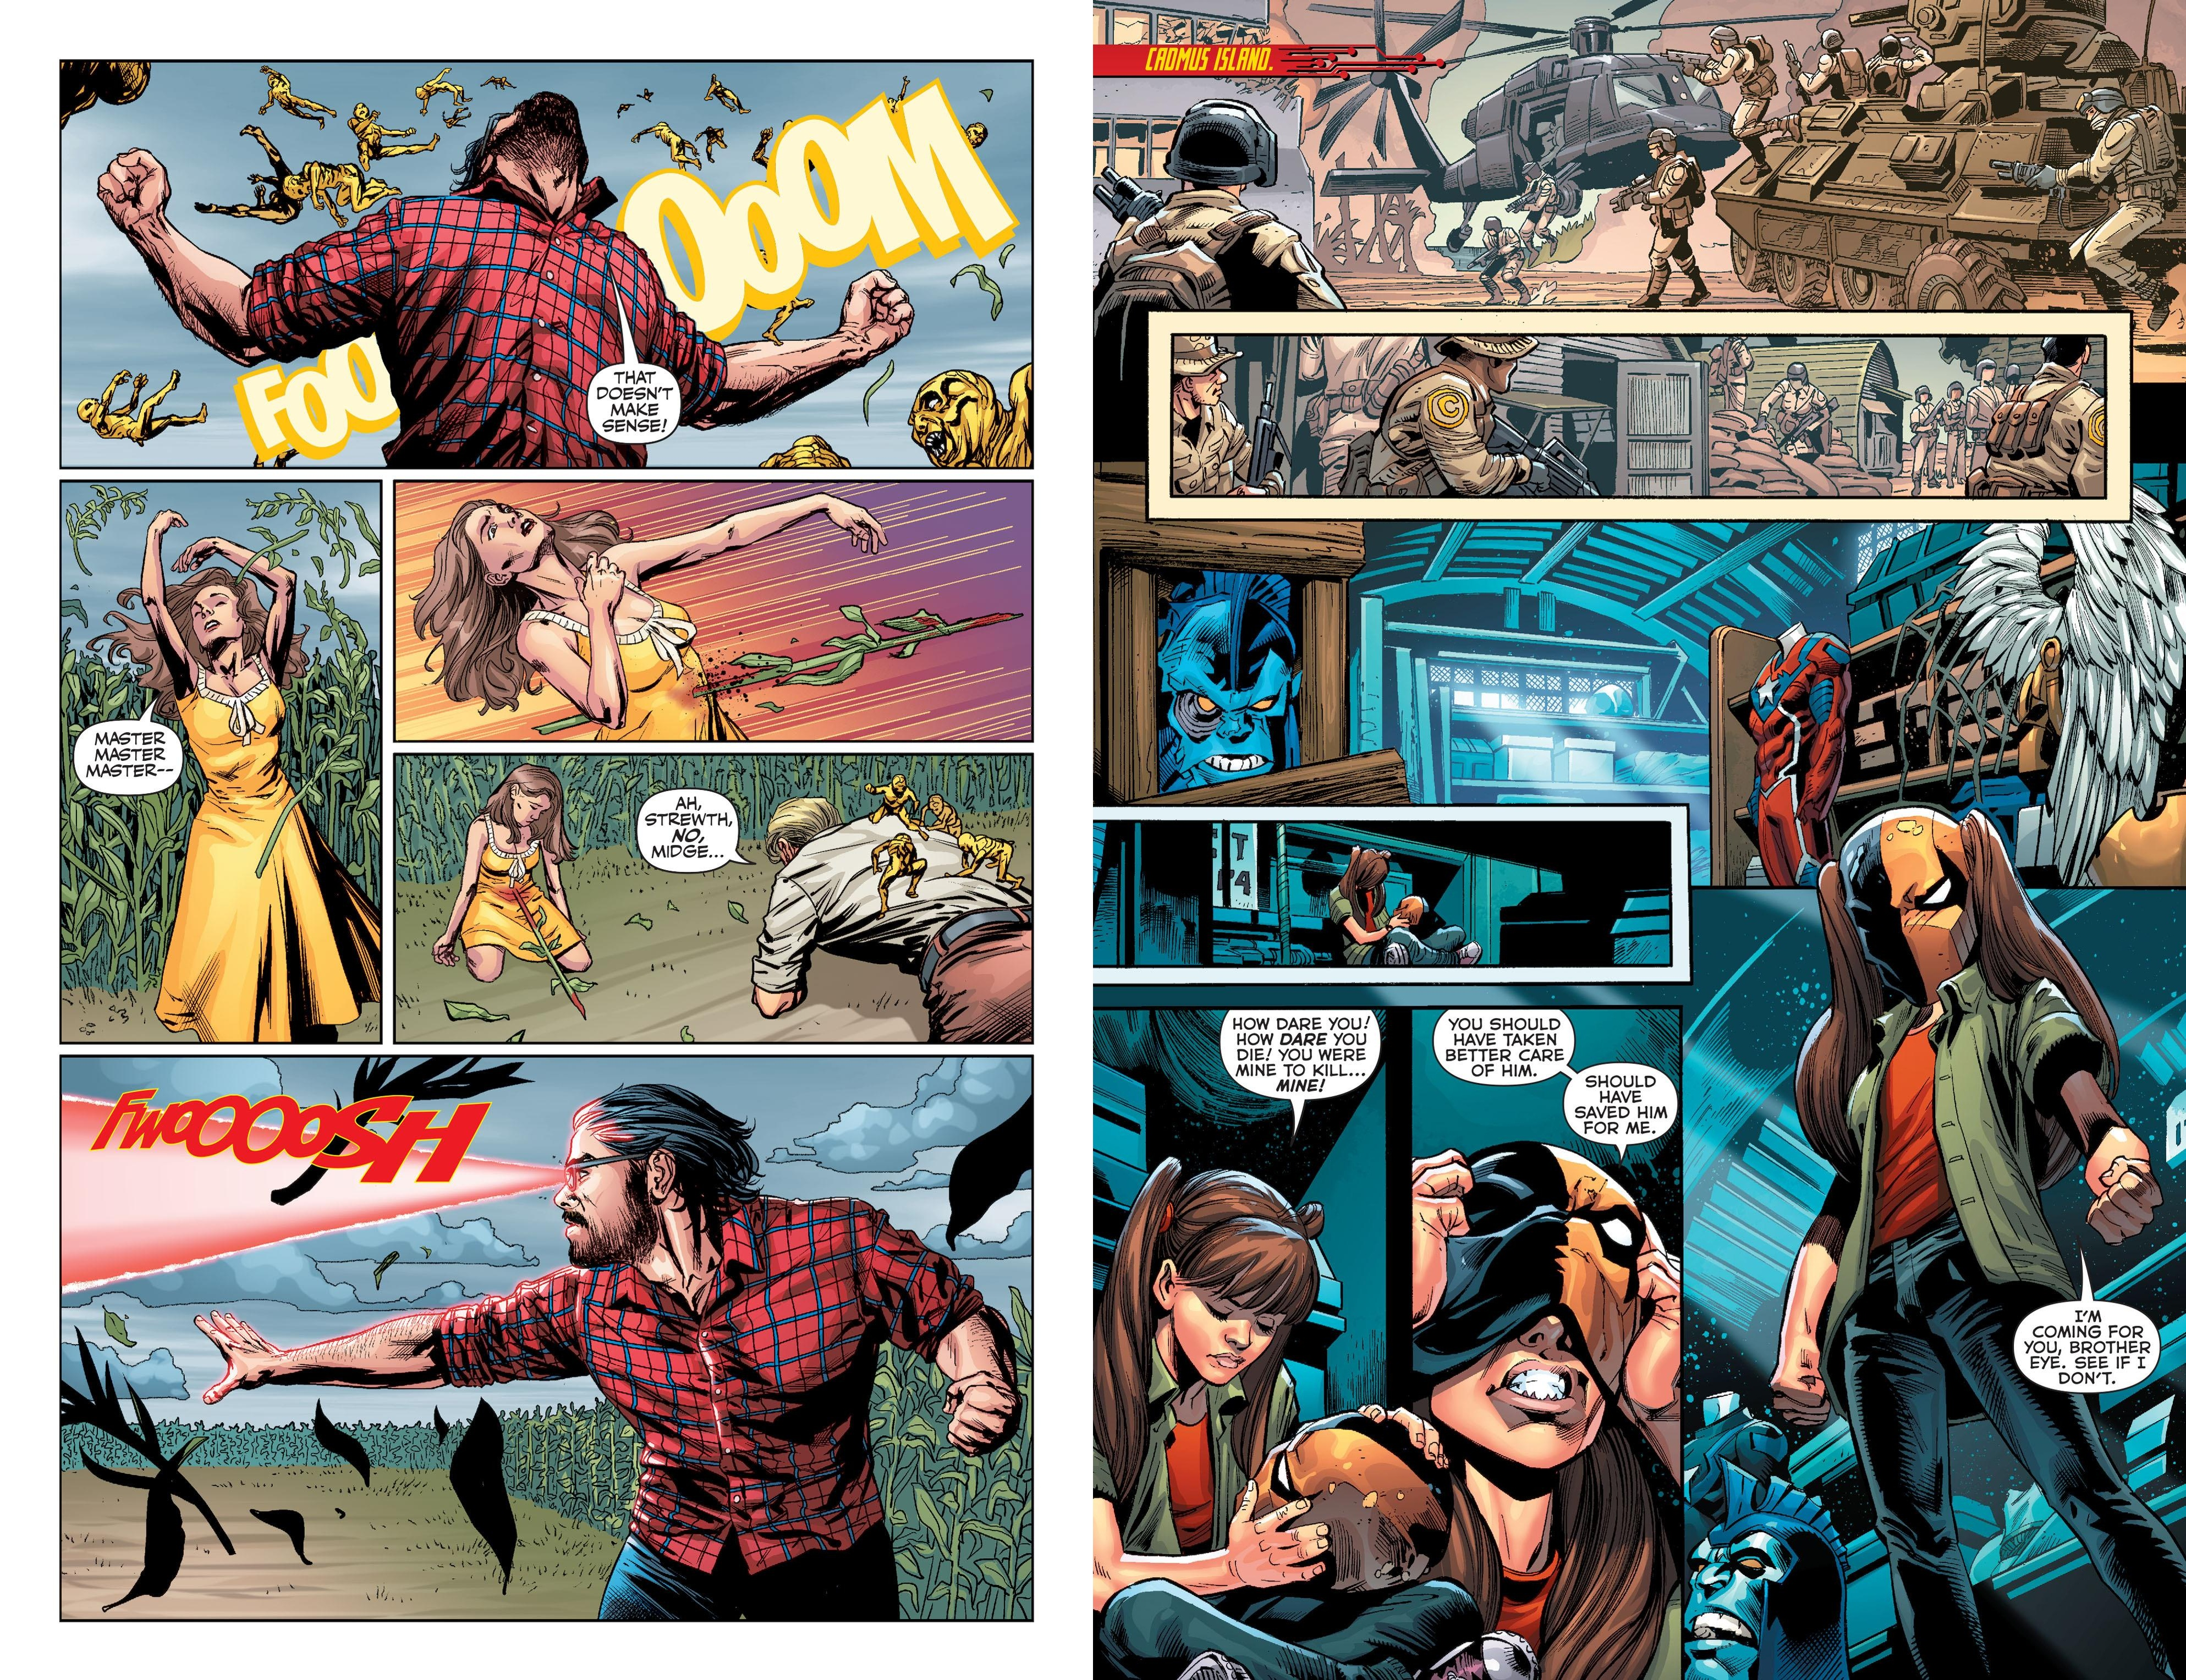 The New 52 Futures End V3 review